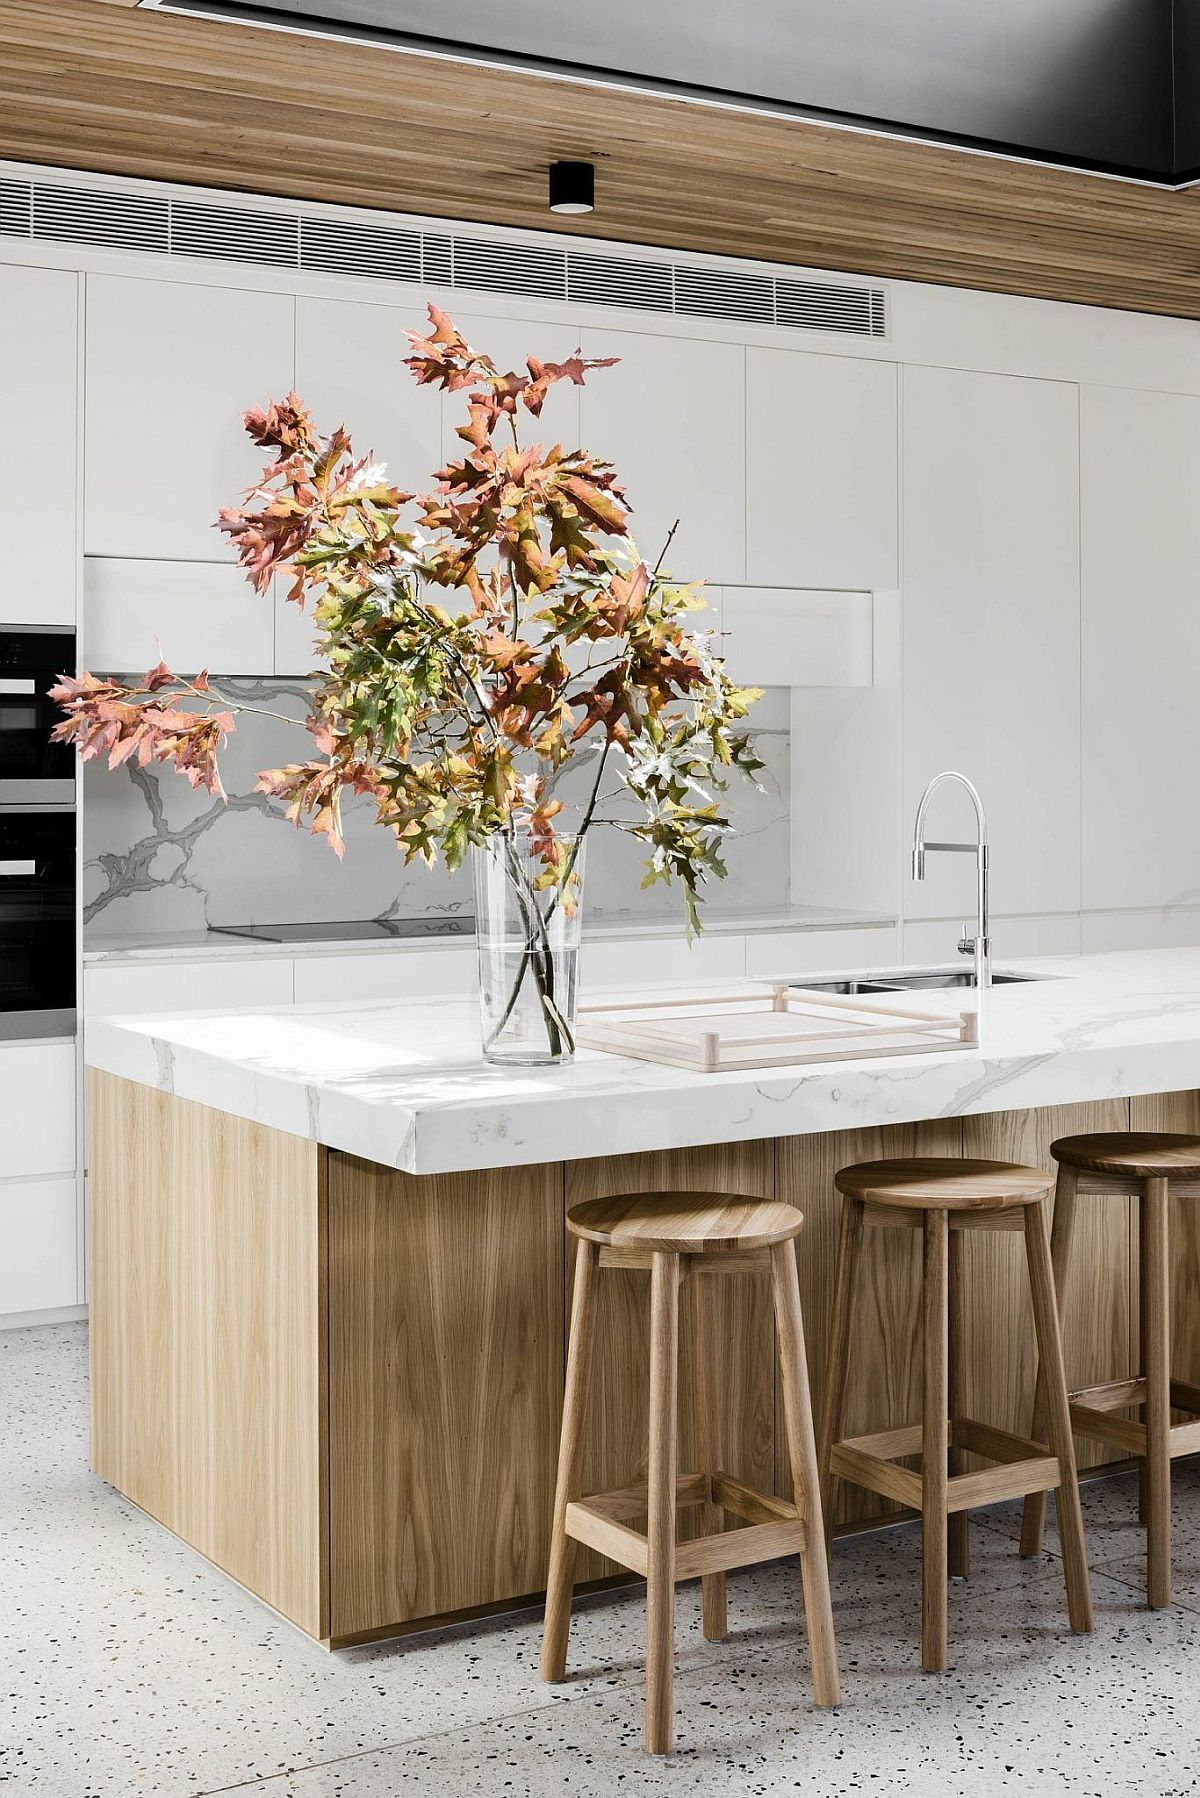 Trendy wood and white kitchen idea with a bit of fall magic!